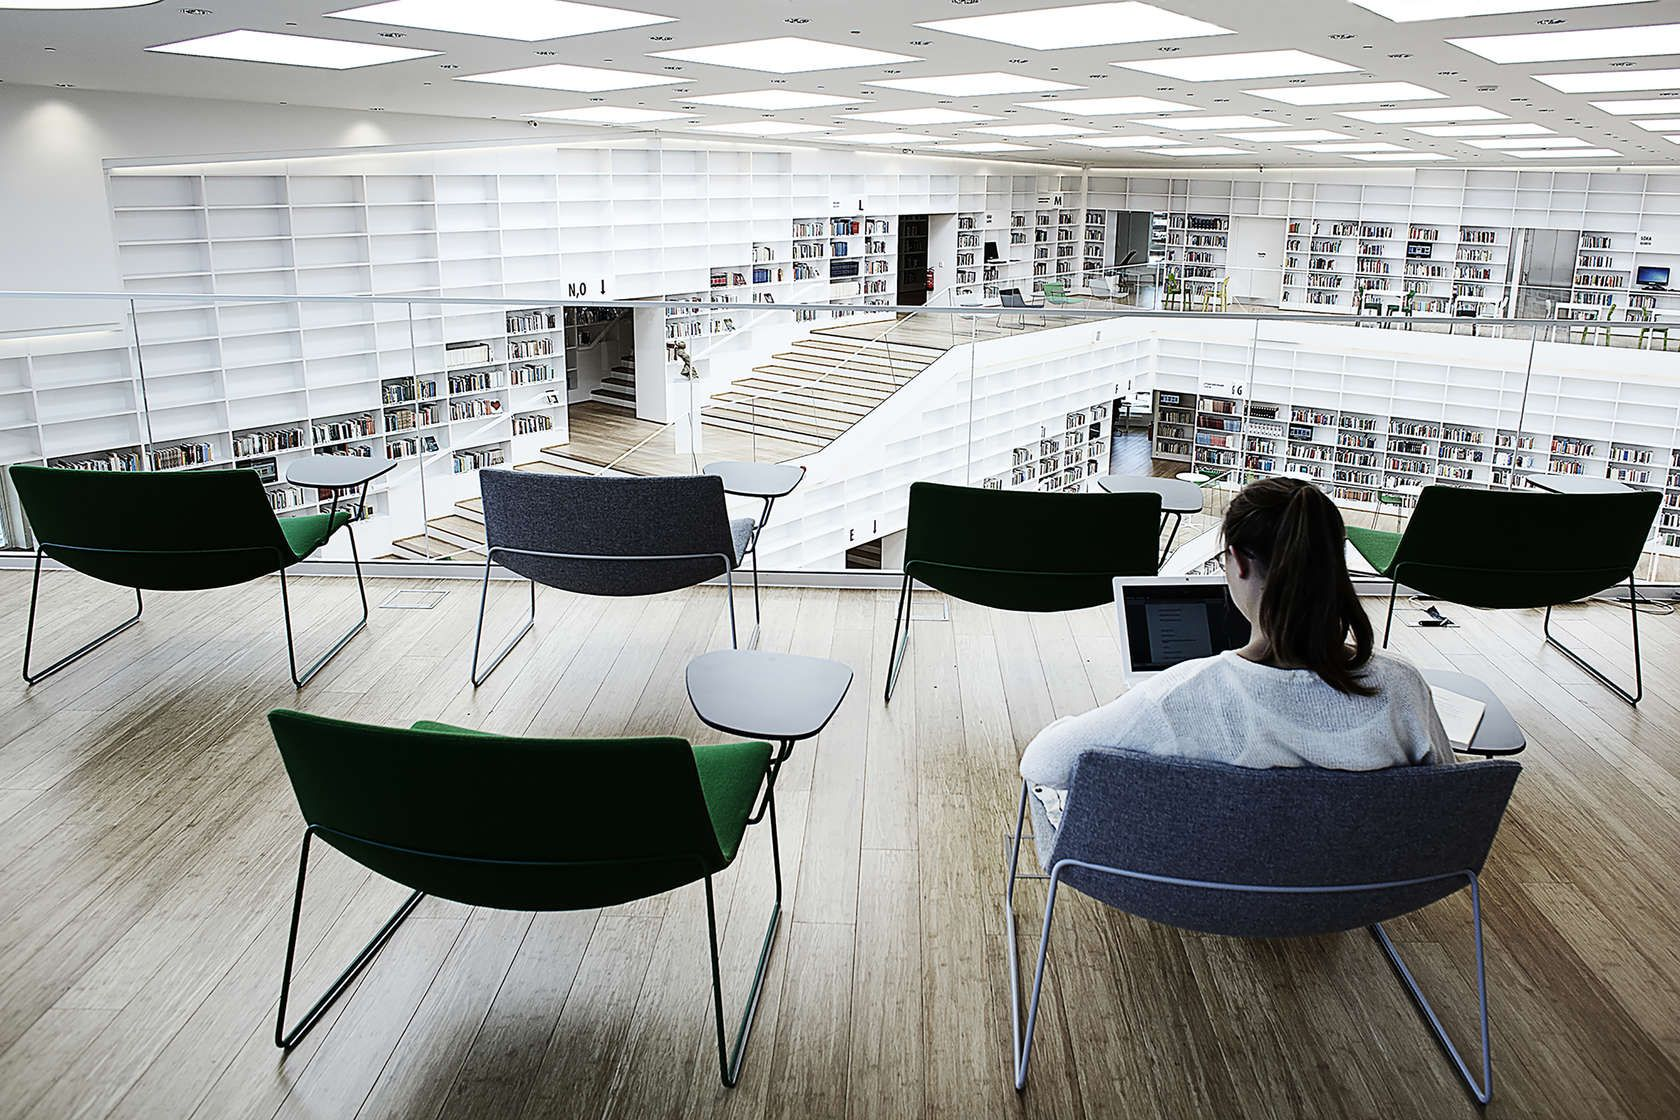 The building that reinterprets the library in a multi functional design is laid…